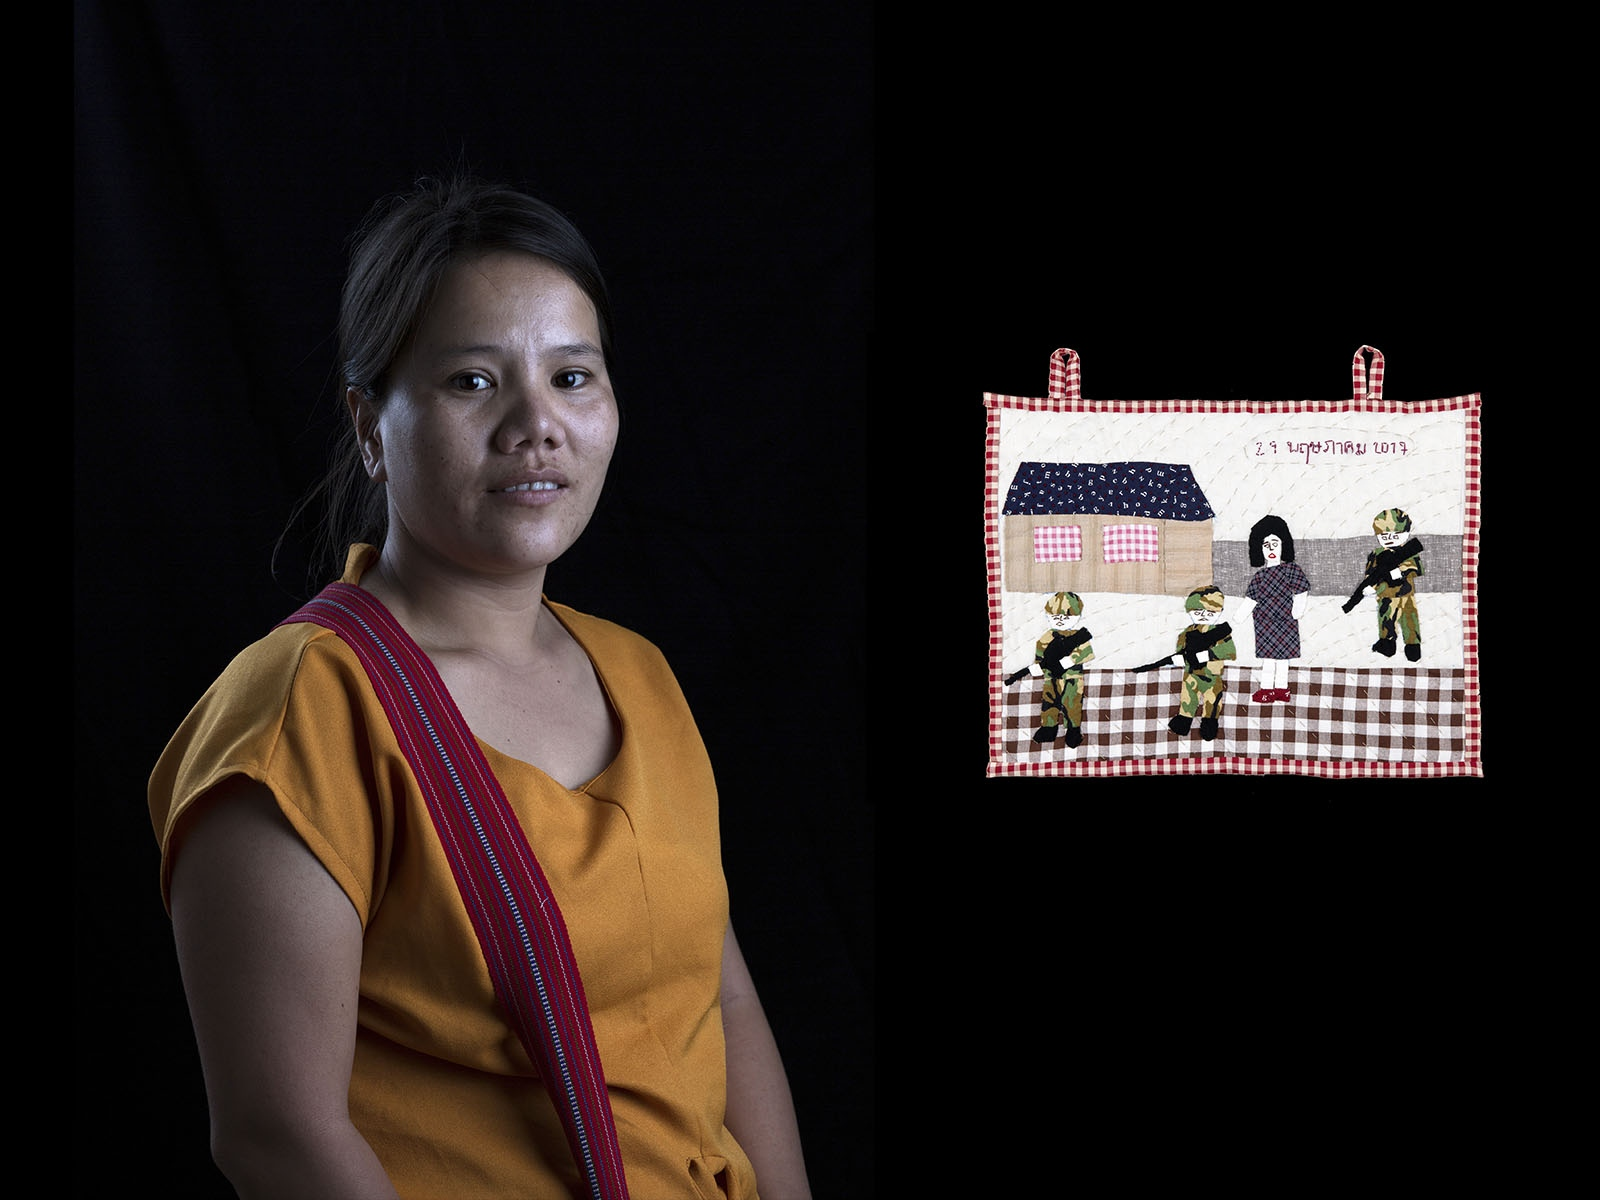 Nawa Chaoue is the co-founder of Save Lahu group, was the caretaker of Chaiyaphum Pasae who was shot dead at an army checkpoint, and a member of the Lahu Youth Protectors Group and Network of Indigenous Peoples in Thailand (NIPT).